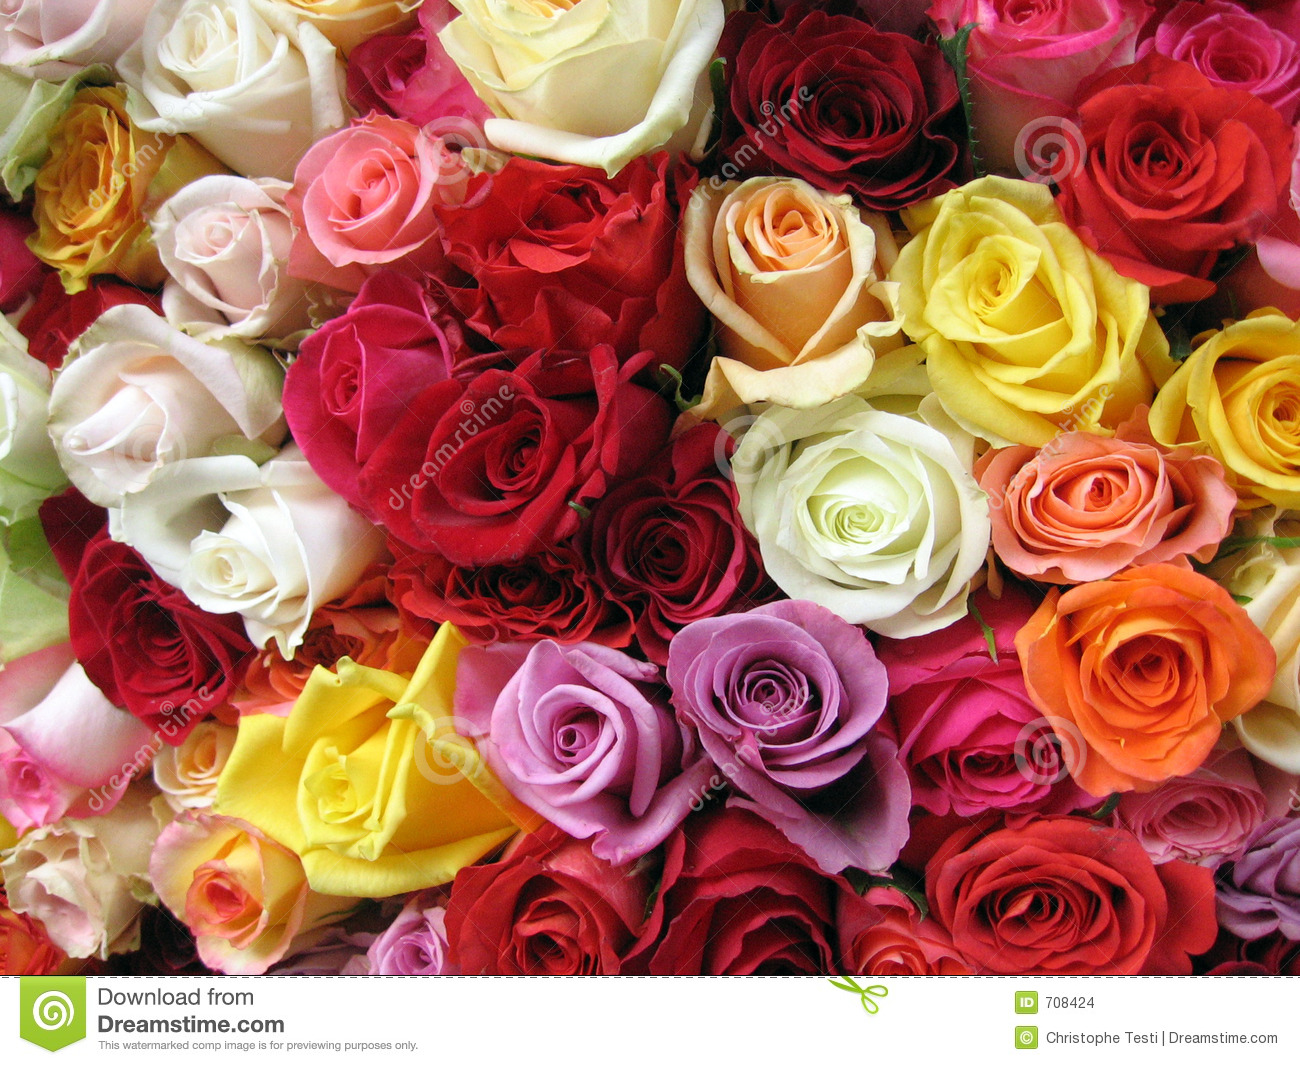 Multicolored Roses Stock Images - Image: 708424